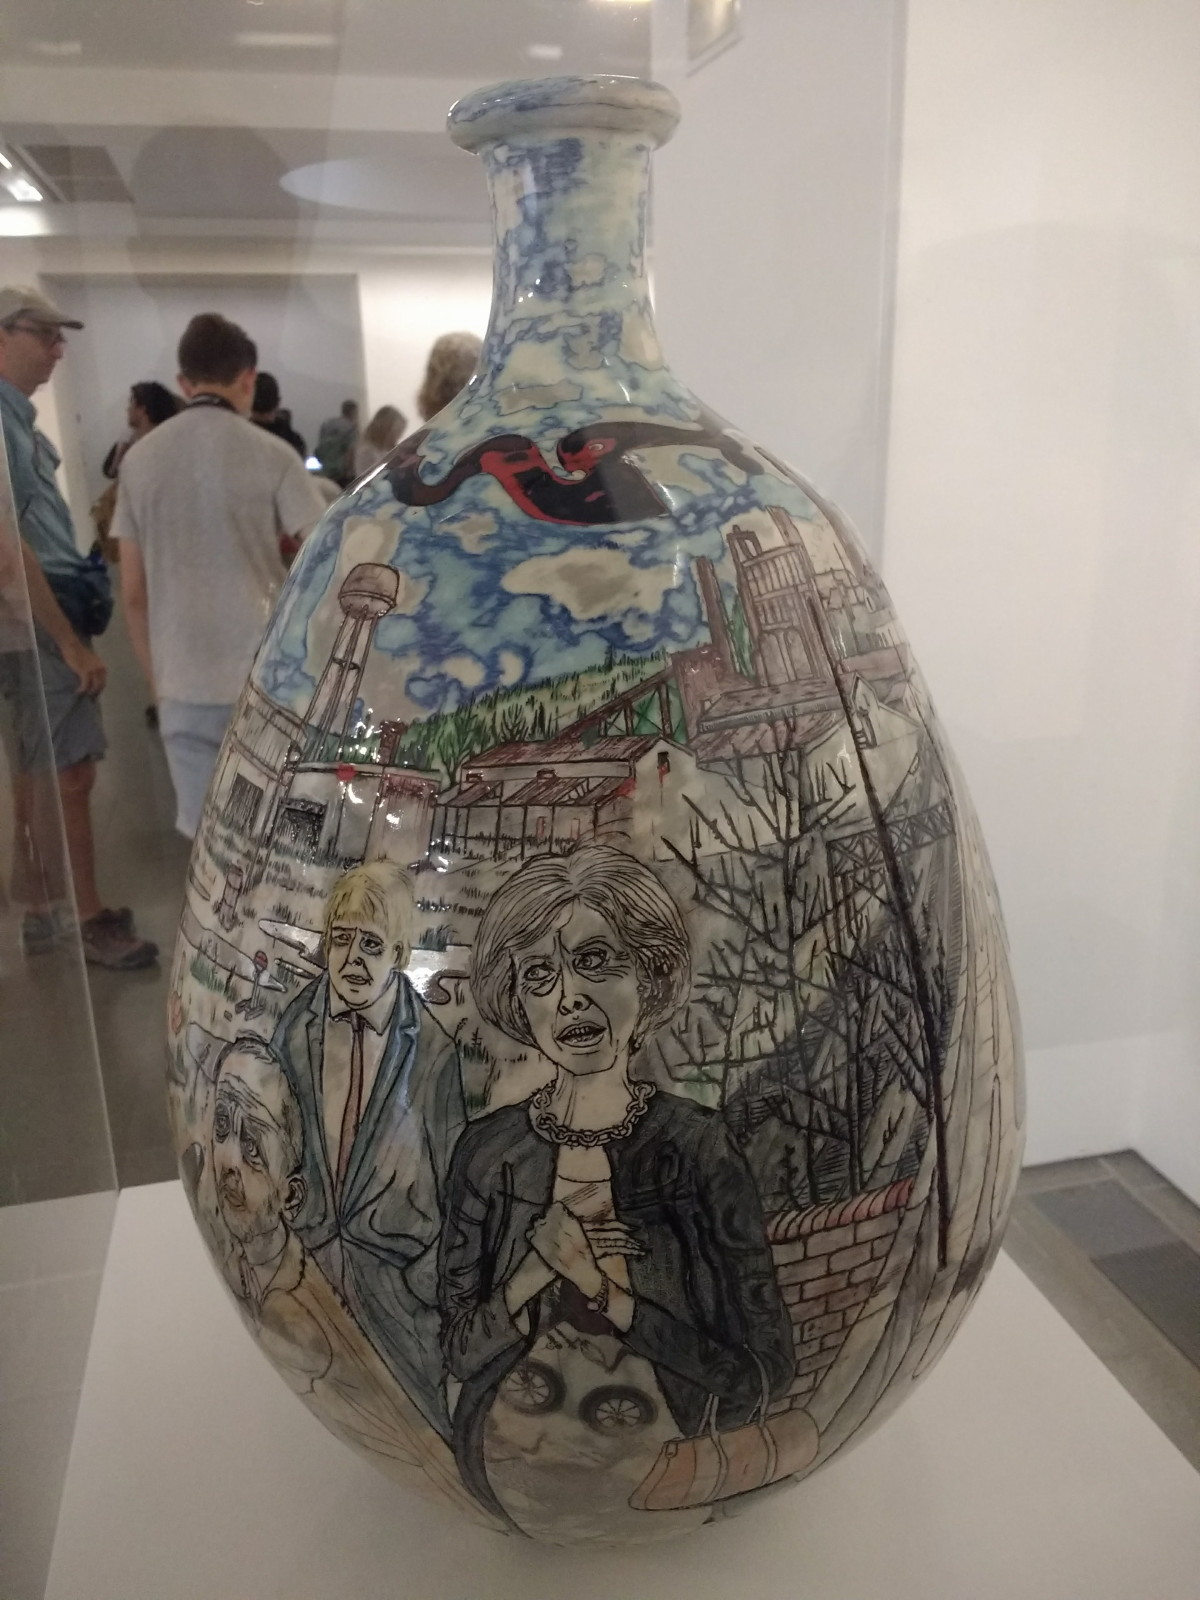 London grayson perrys the most popular art exhibition ever i first encountered grayson perry when he was a panellist on have i got news for you way back in 2009 when he appeared as his alter ego claire reviewsmspy